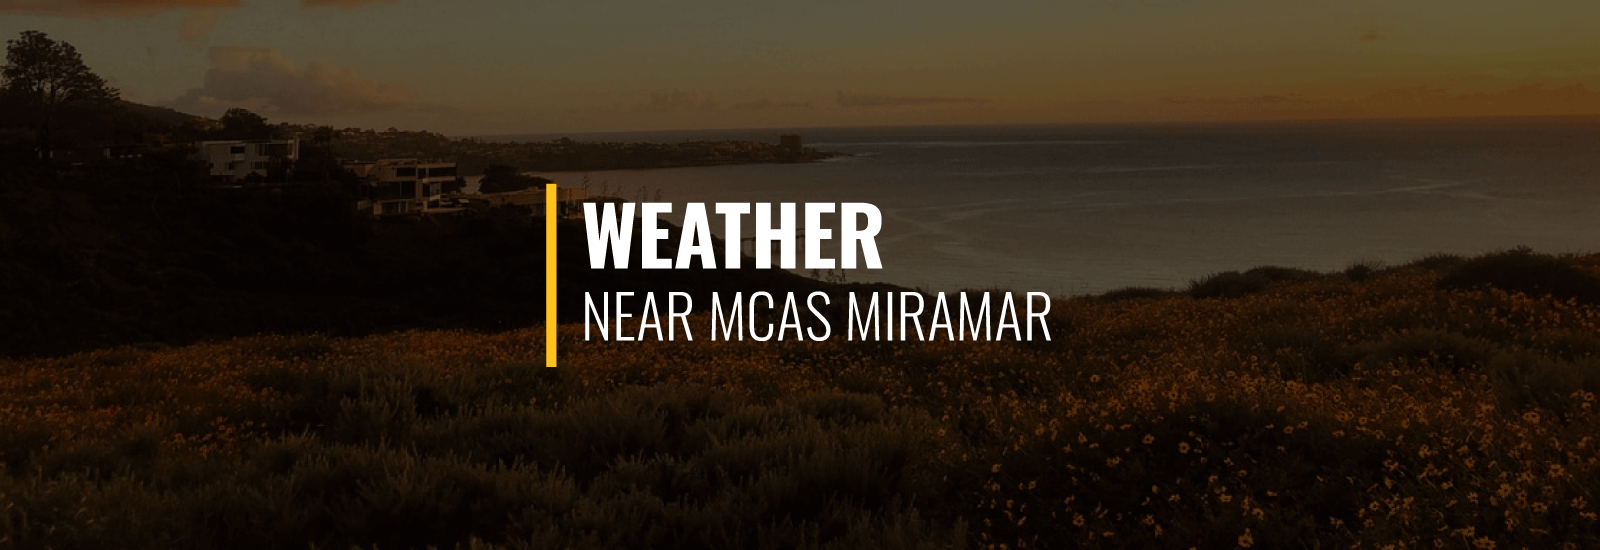 MCAS Miramar Weather